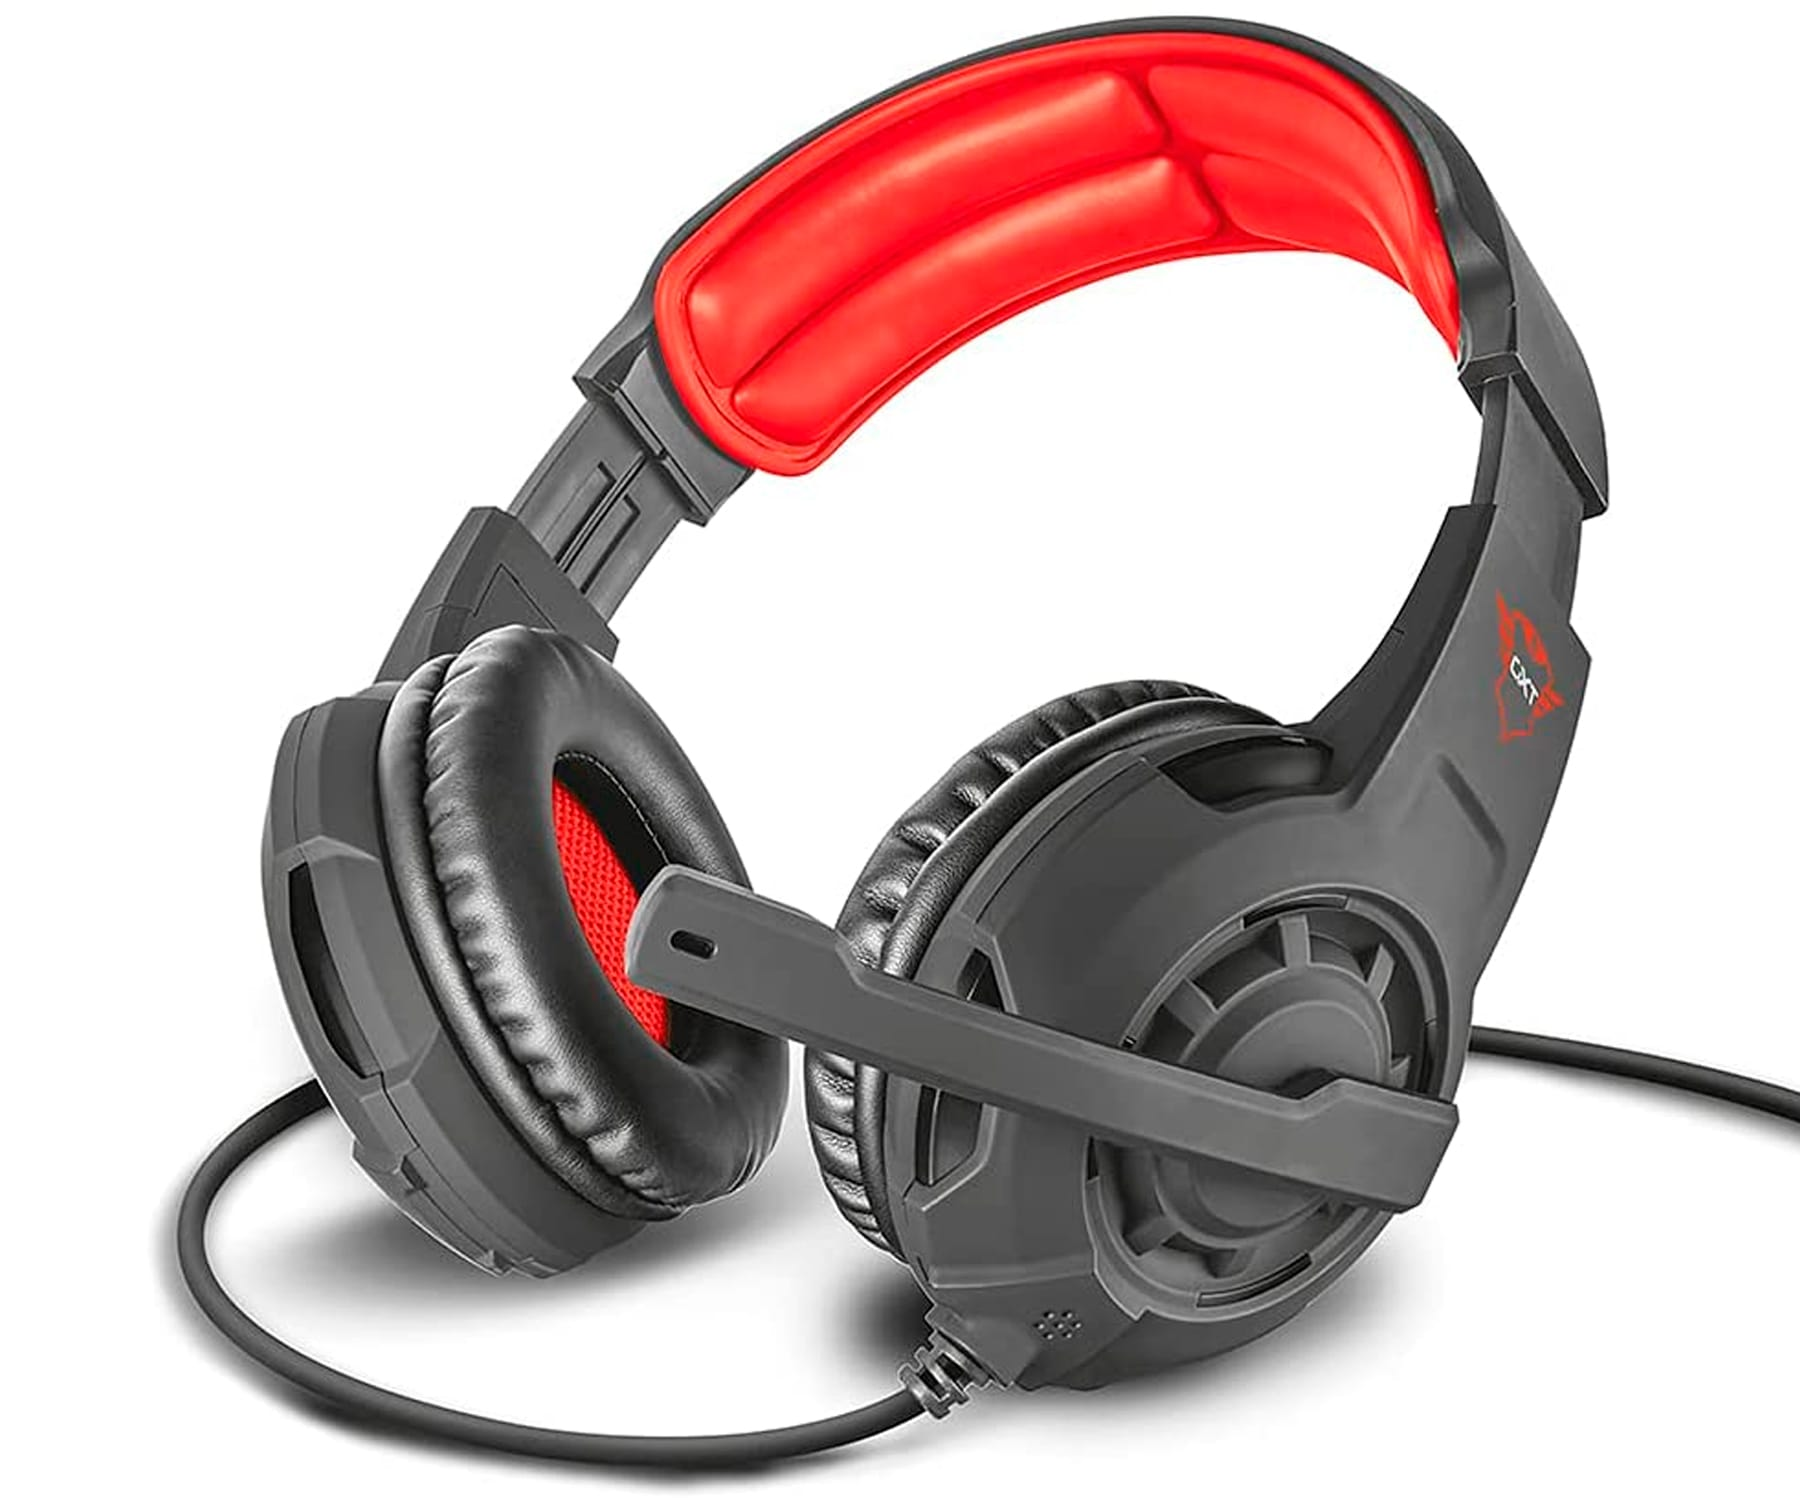 TRUST GXT 310 AURICULARES GAMING - GXT 310 GAMING